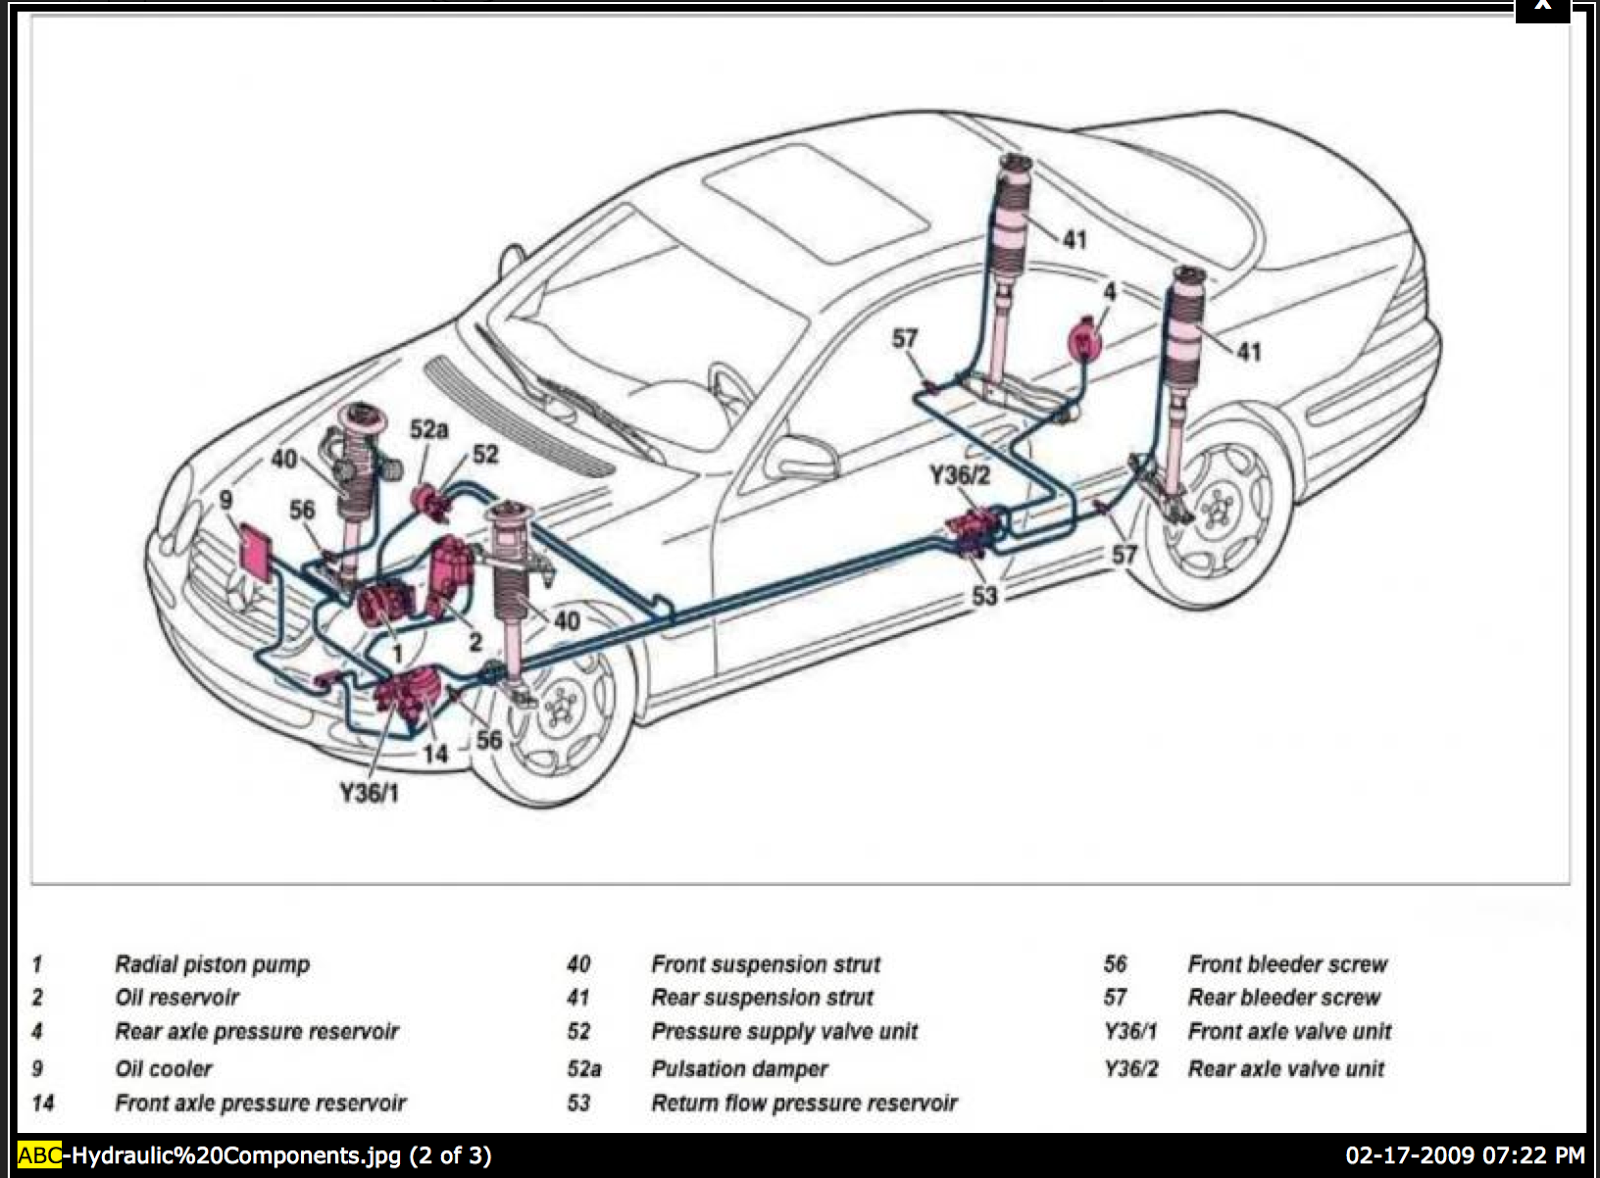 P 0900c1528008d3a7 in addition International Harvester Farmall 806 856 1206 1256 And 1456 Factory Service Manual Js Ih S 806 Plus as well 2000 Ford Mustang Fuse Box 98 3 8 Diagram Wirdig Inside 1 Experimental Capture Size Handphone Tablet Desktop Original Back as well Overview Abc System Isthe Key Part Of in addition Abc System Troubleshooting. on hydraulic pump wiring diagram